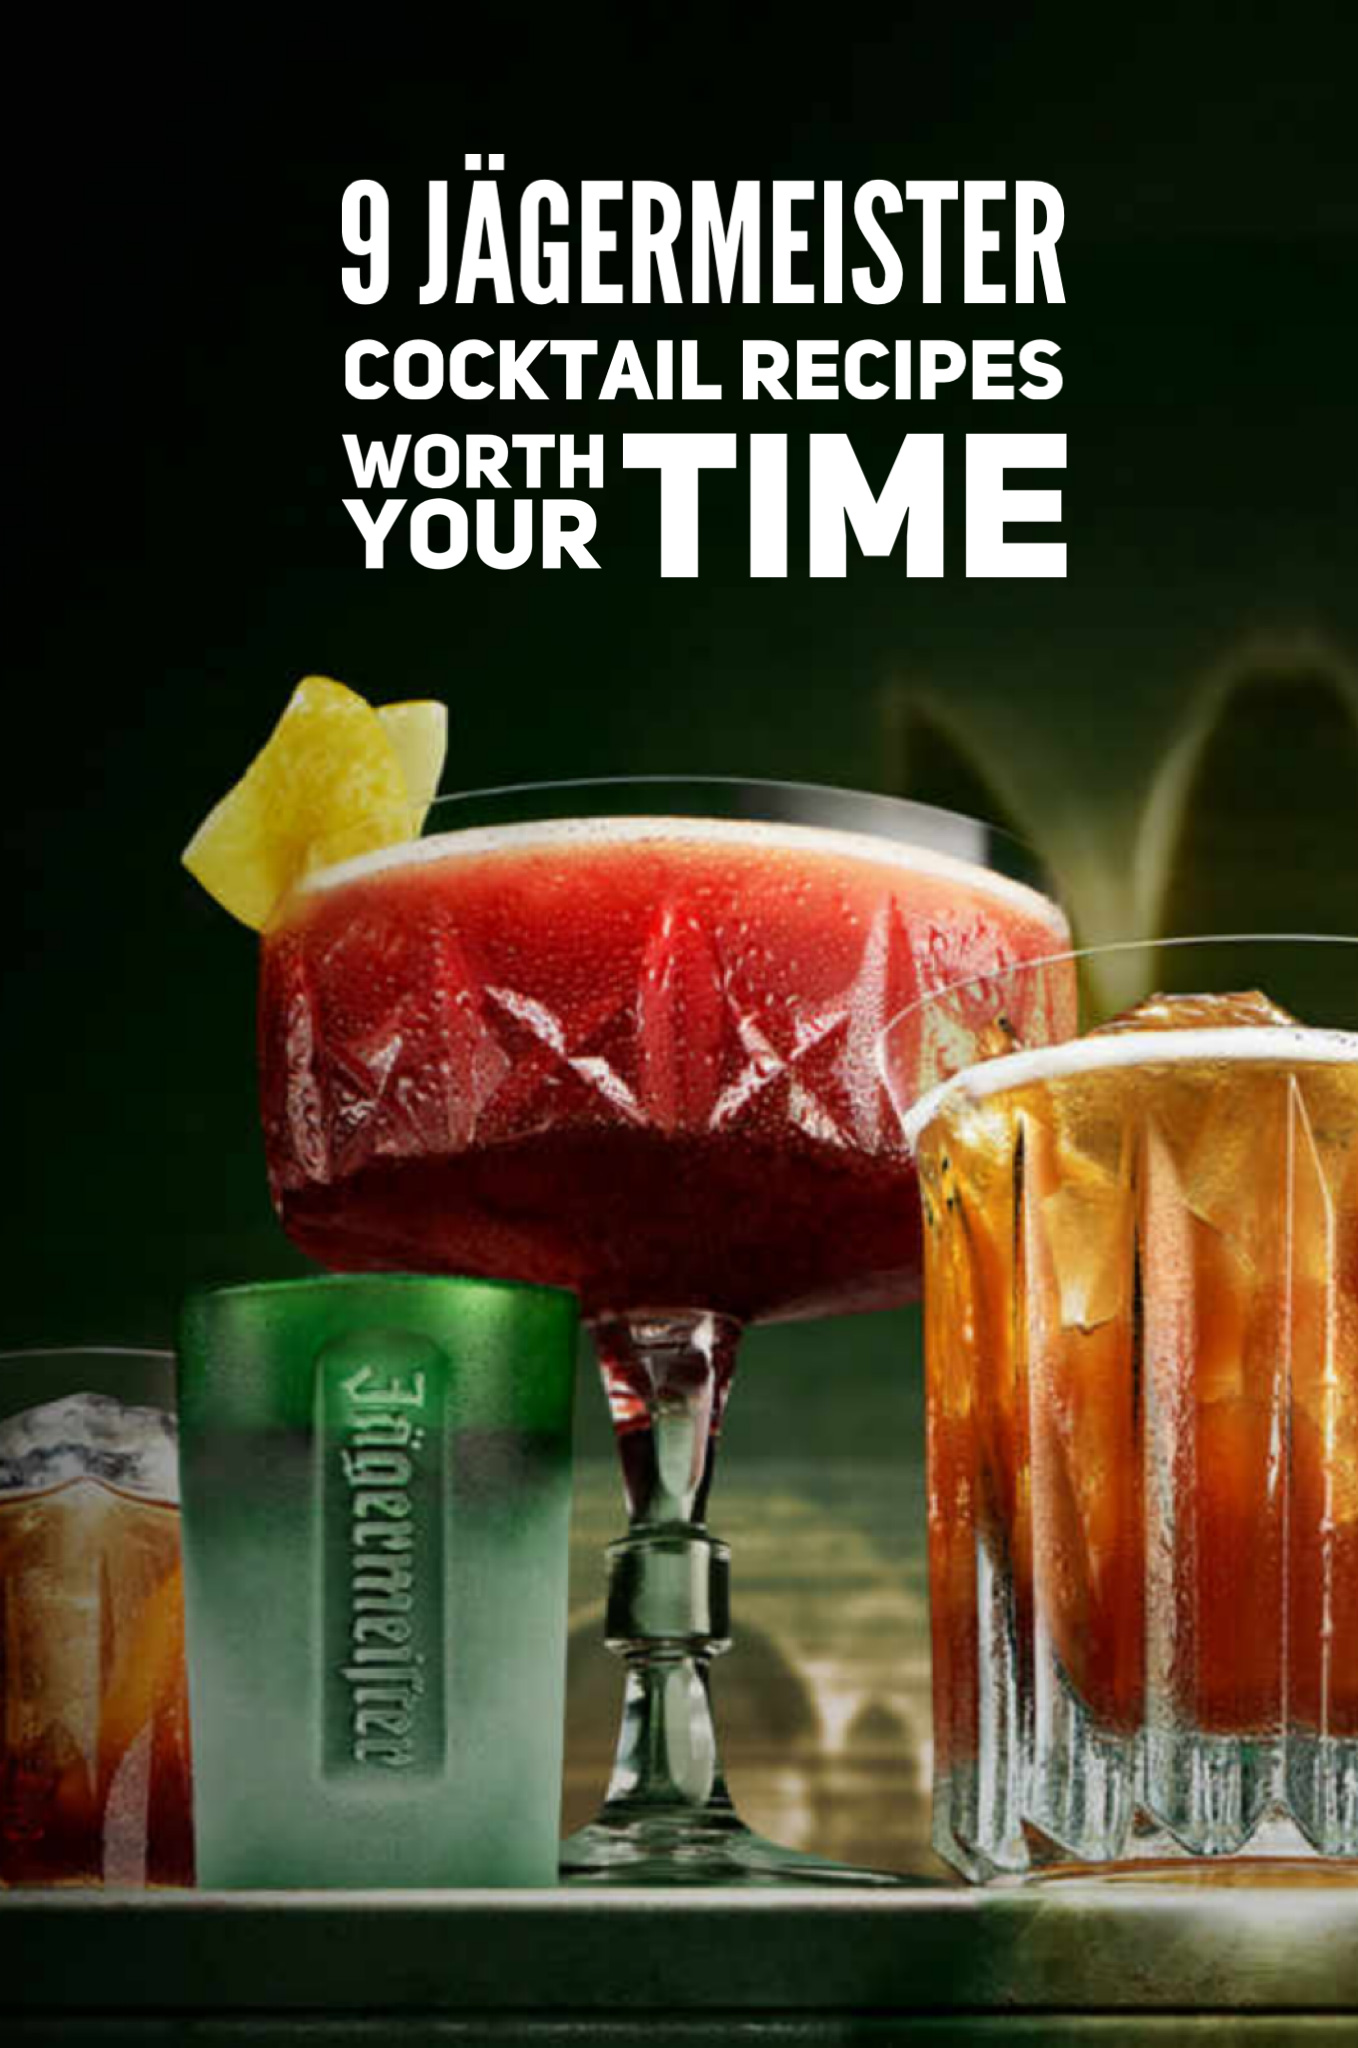 9 Jagermeister Cocktail Recipes Worth Your Time